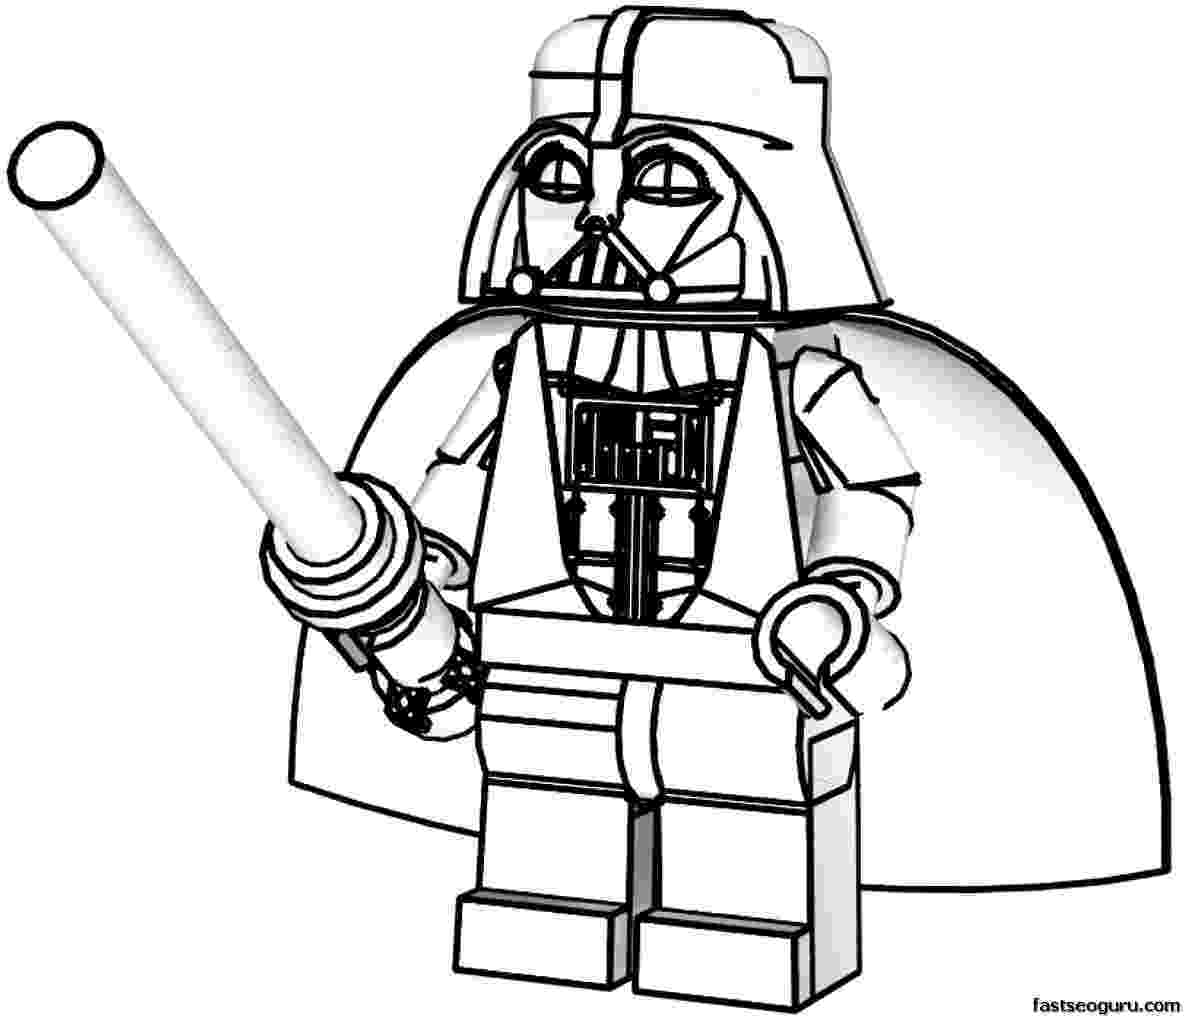 free printable star wars coloring pages star wars coloring pages getcoloringpagescom pages star coloring free wars printable